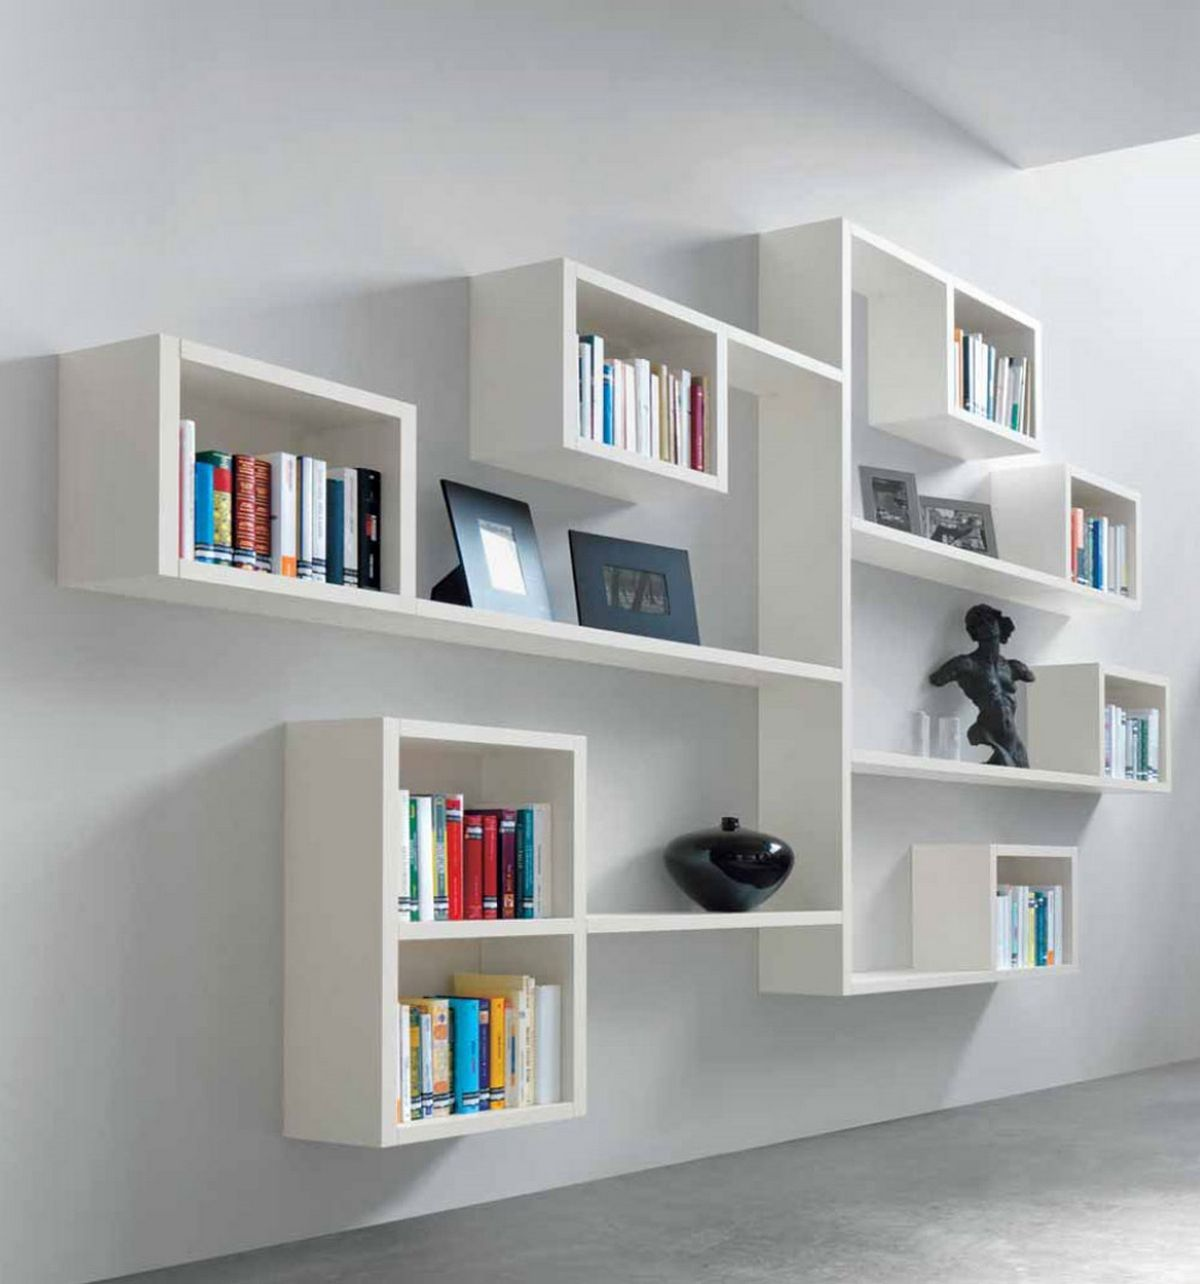 Bookcase Design Ideas living room with white bookcase design ideas 26 Of The Most Creative Bookshelves Designs Bookshelf Designbookshelf Ideasbook